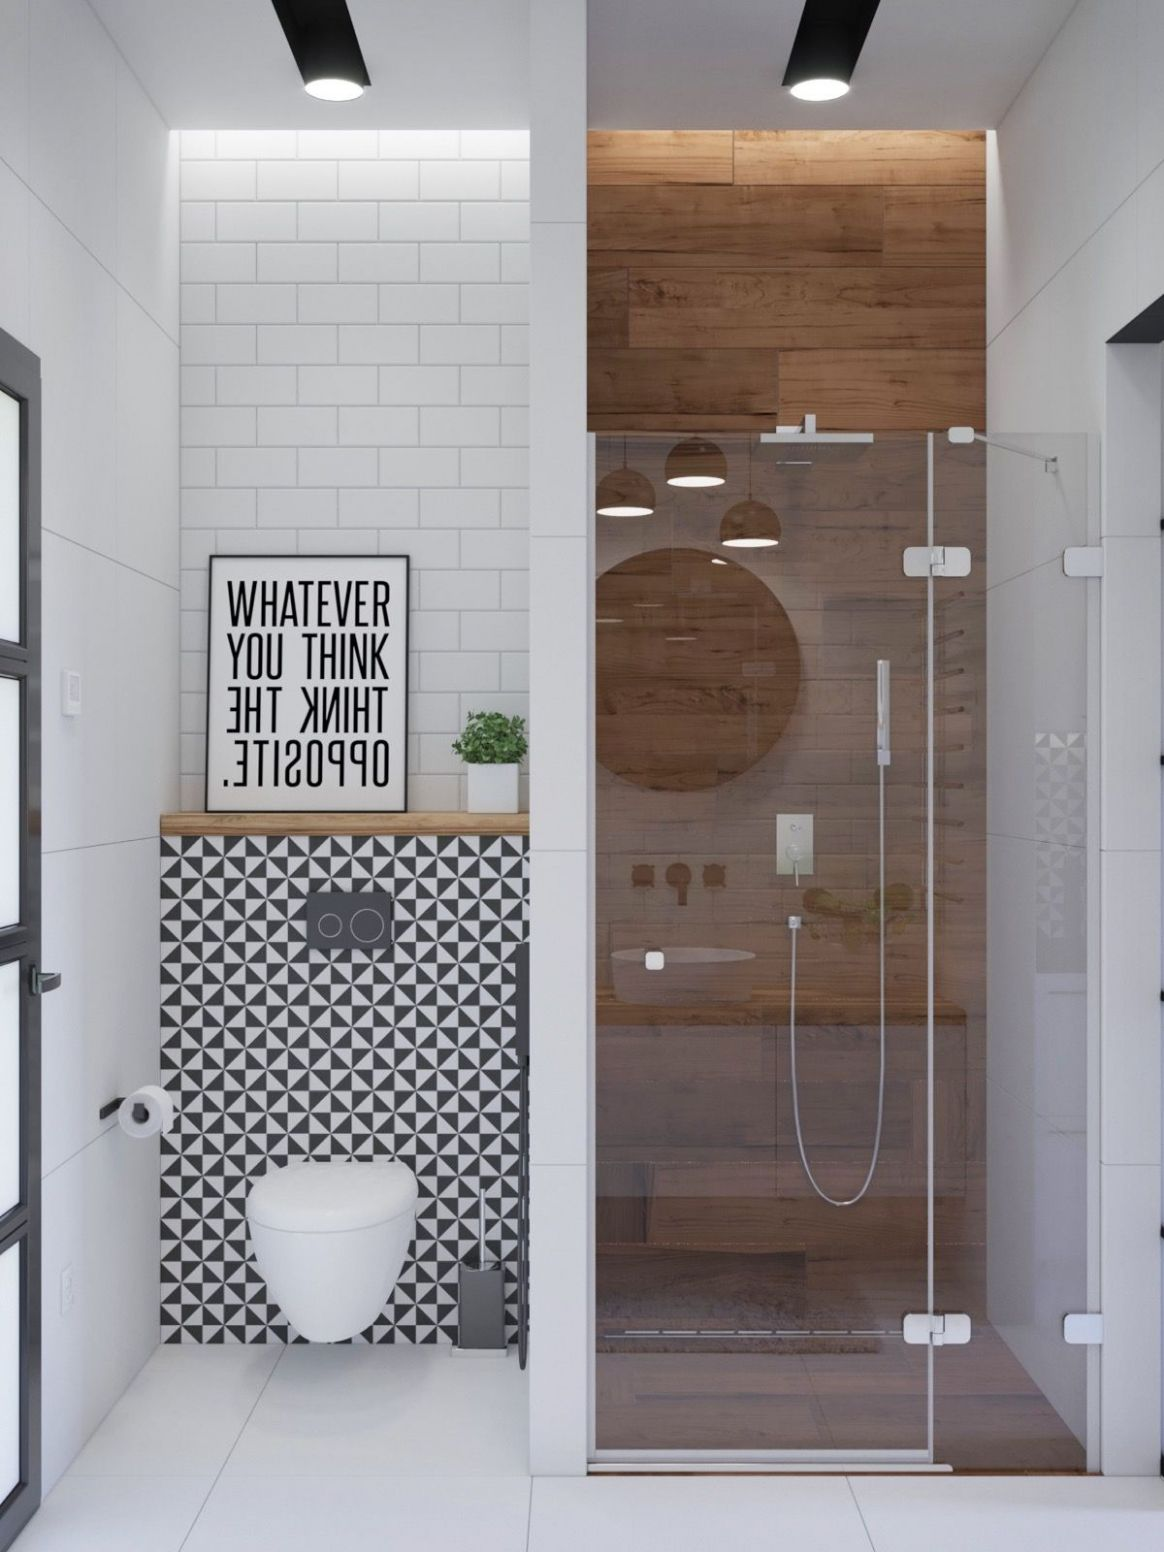 12 Modern Bathroom Design Ideas Plus Tips On How To Accessorize ..